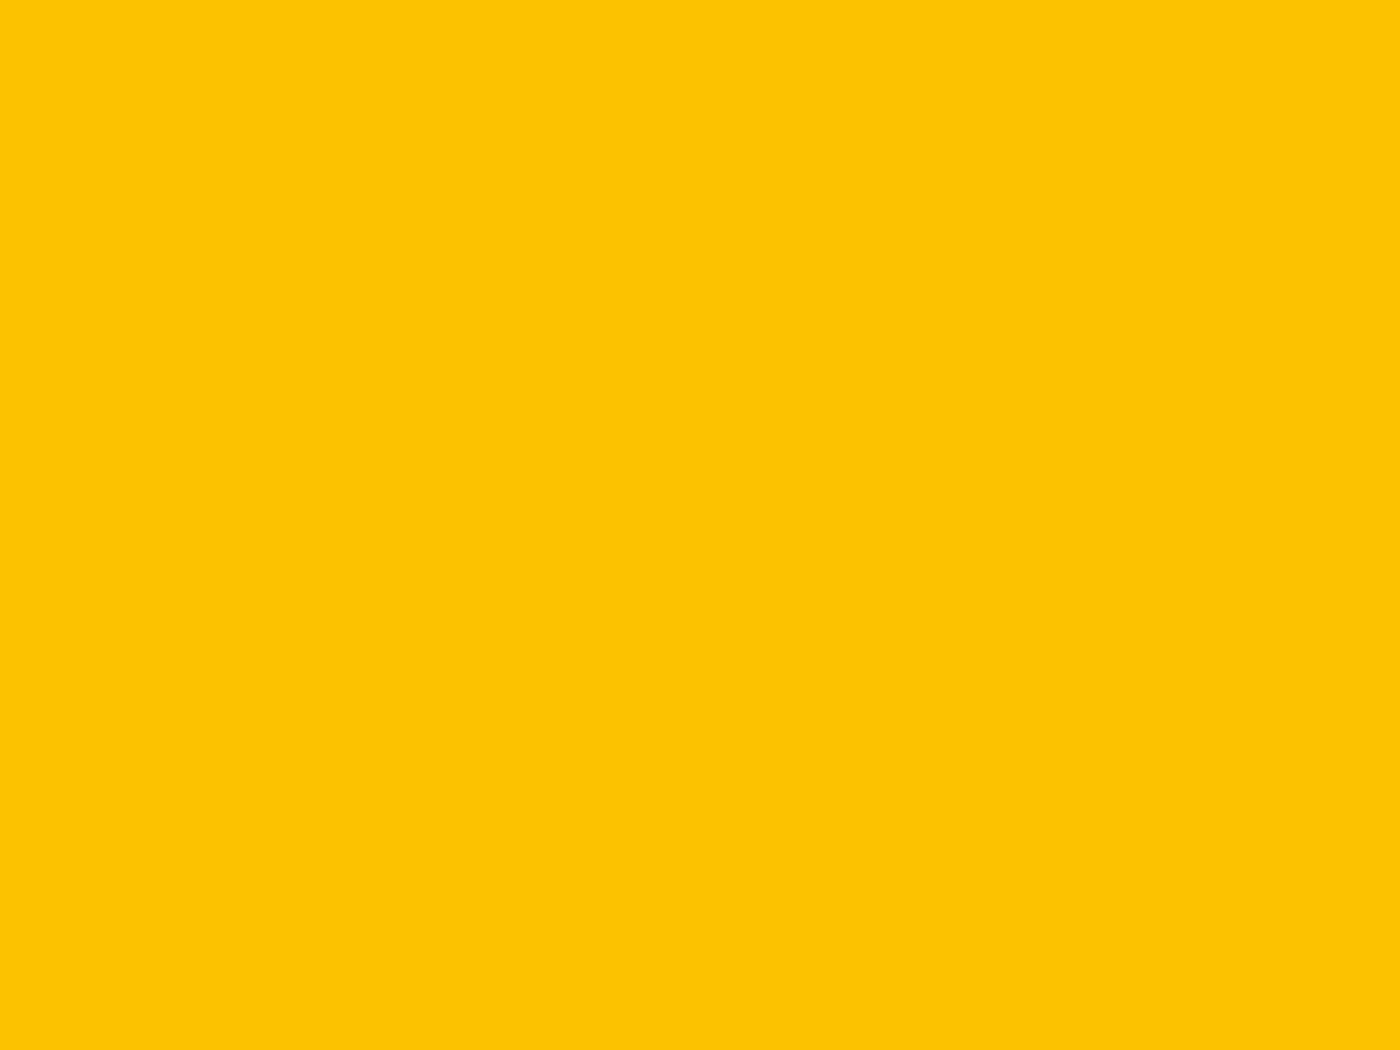 1400x1050 Golden Poppy Solid Color Background